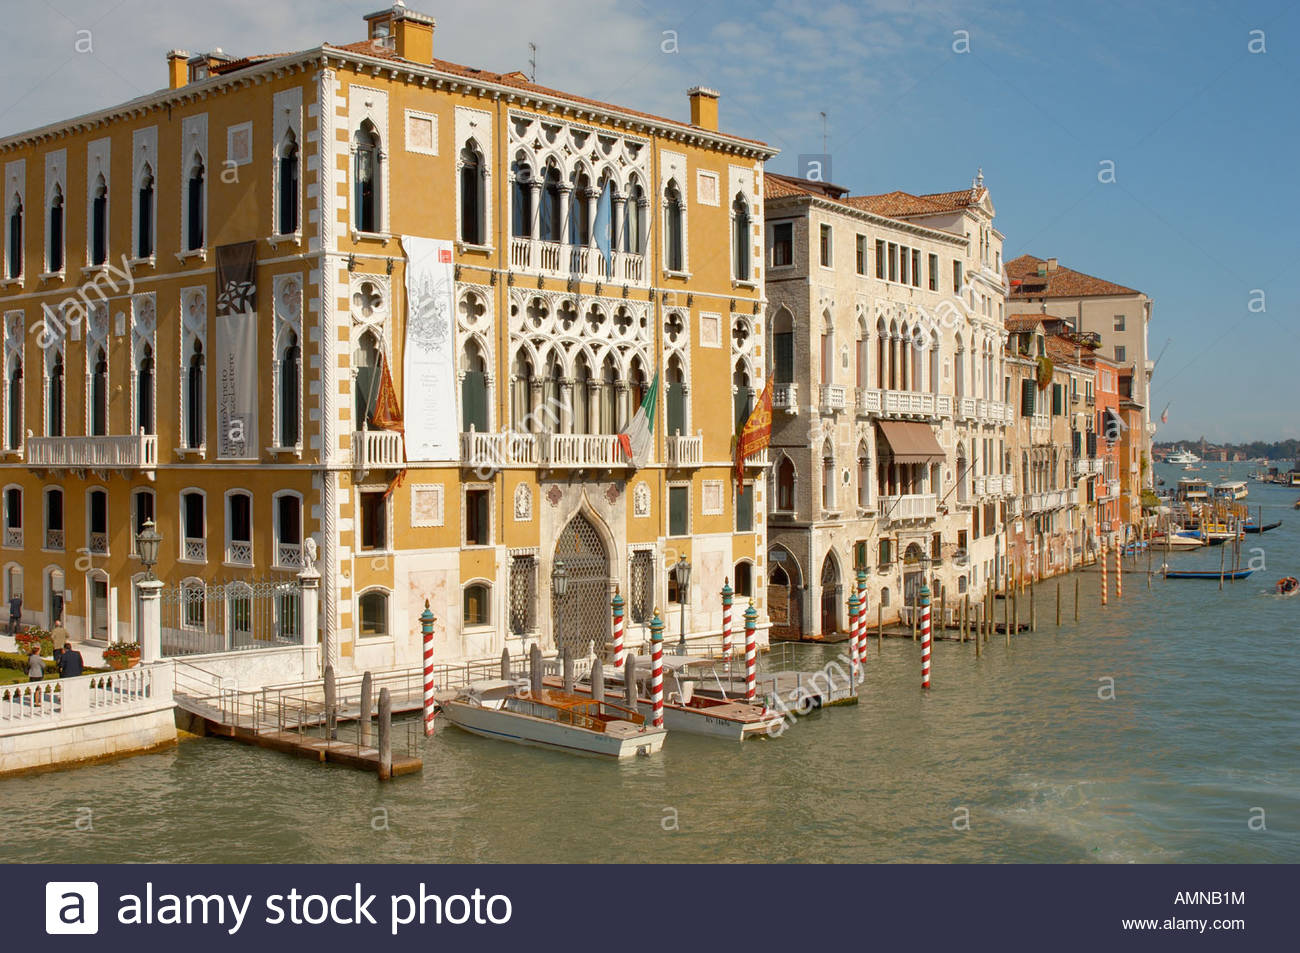 Venice Italy. Grand Canal and Palaces at Academia - Stock Image